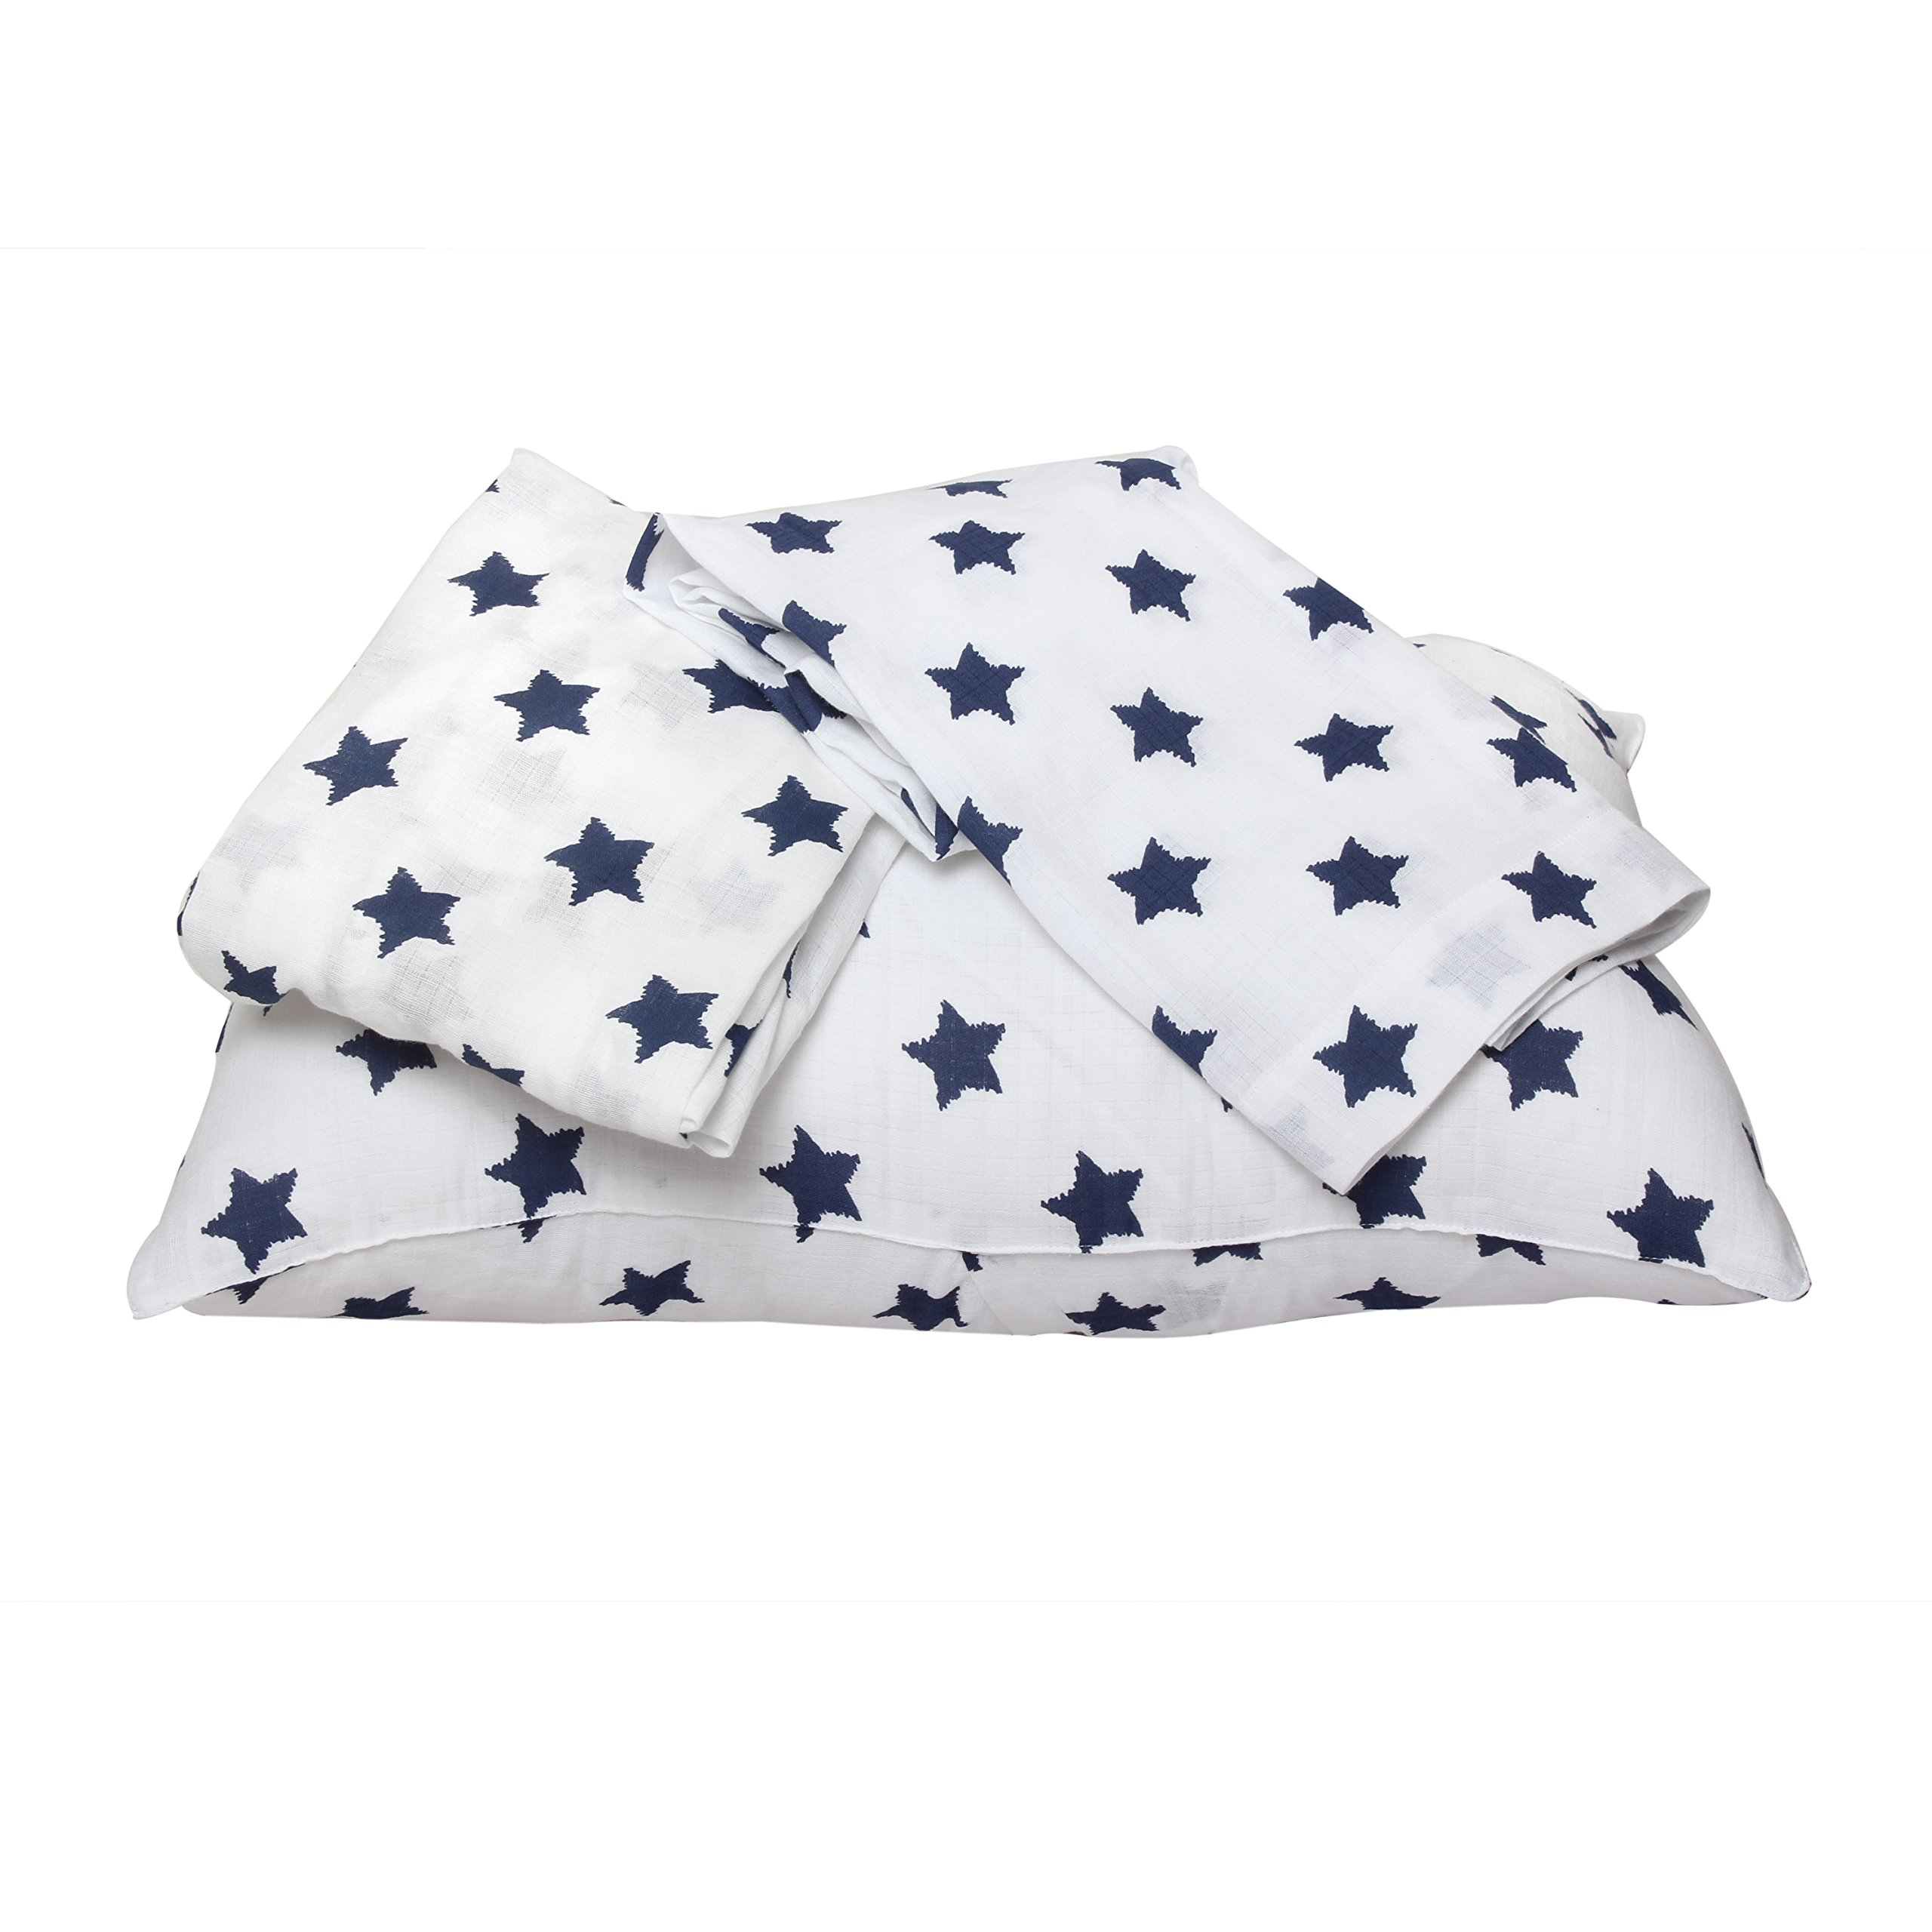 Bacati - Muslin Ikat Stars Toddler Bedding (3 pc Toddler Bed Sheet Set, Navy Stars)